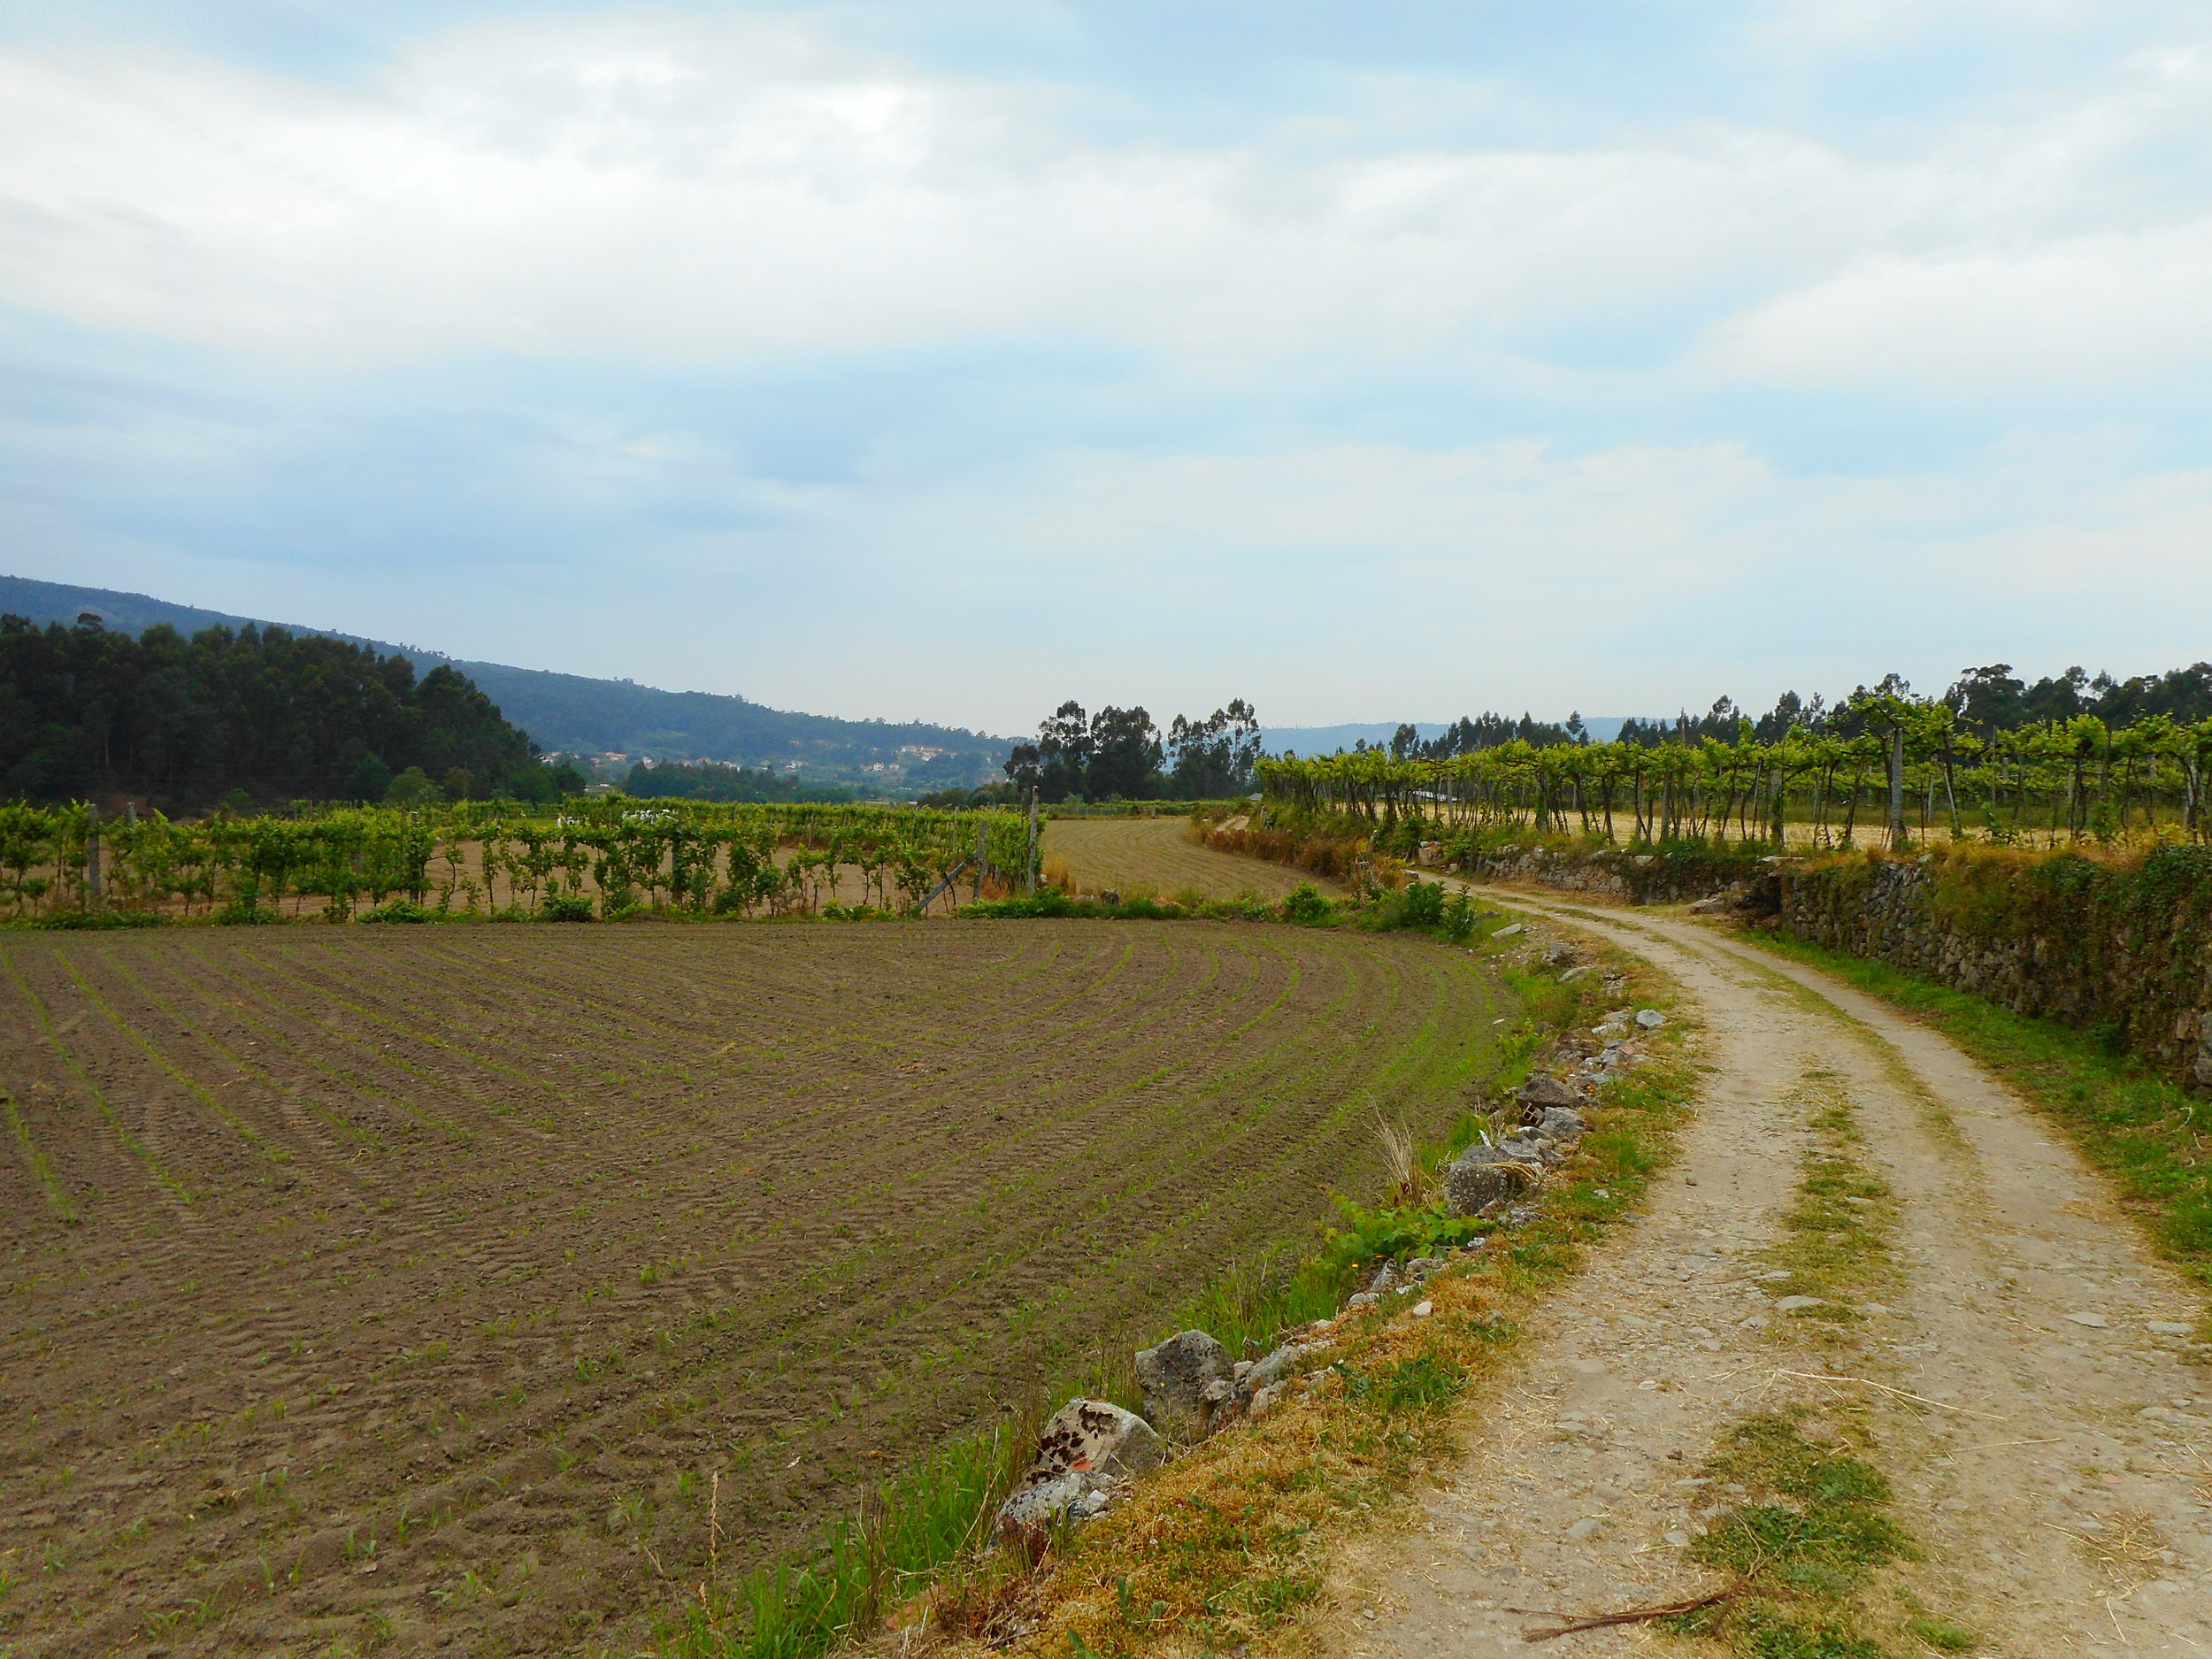 Walking through farmland and vineyards